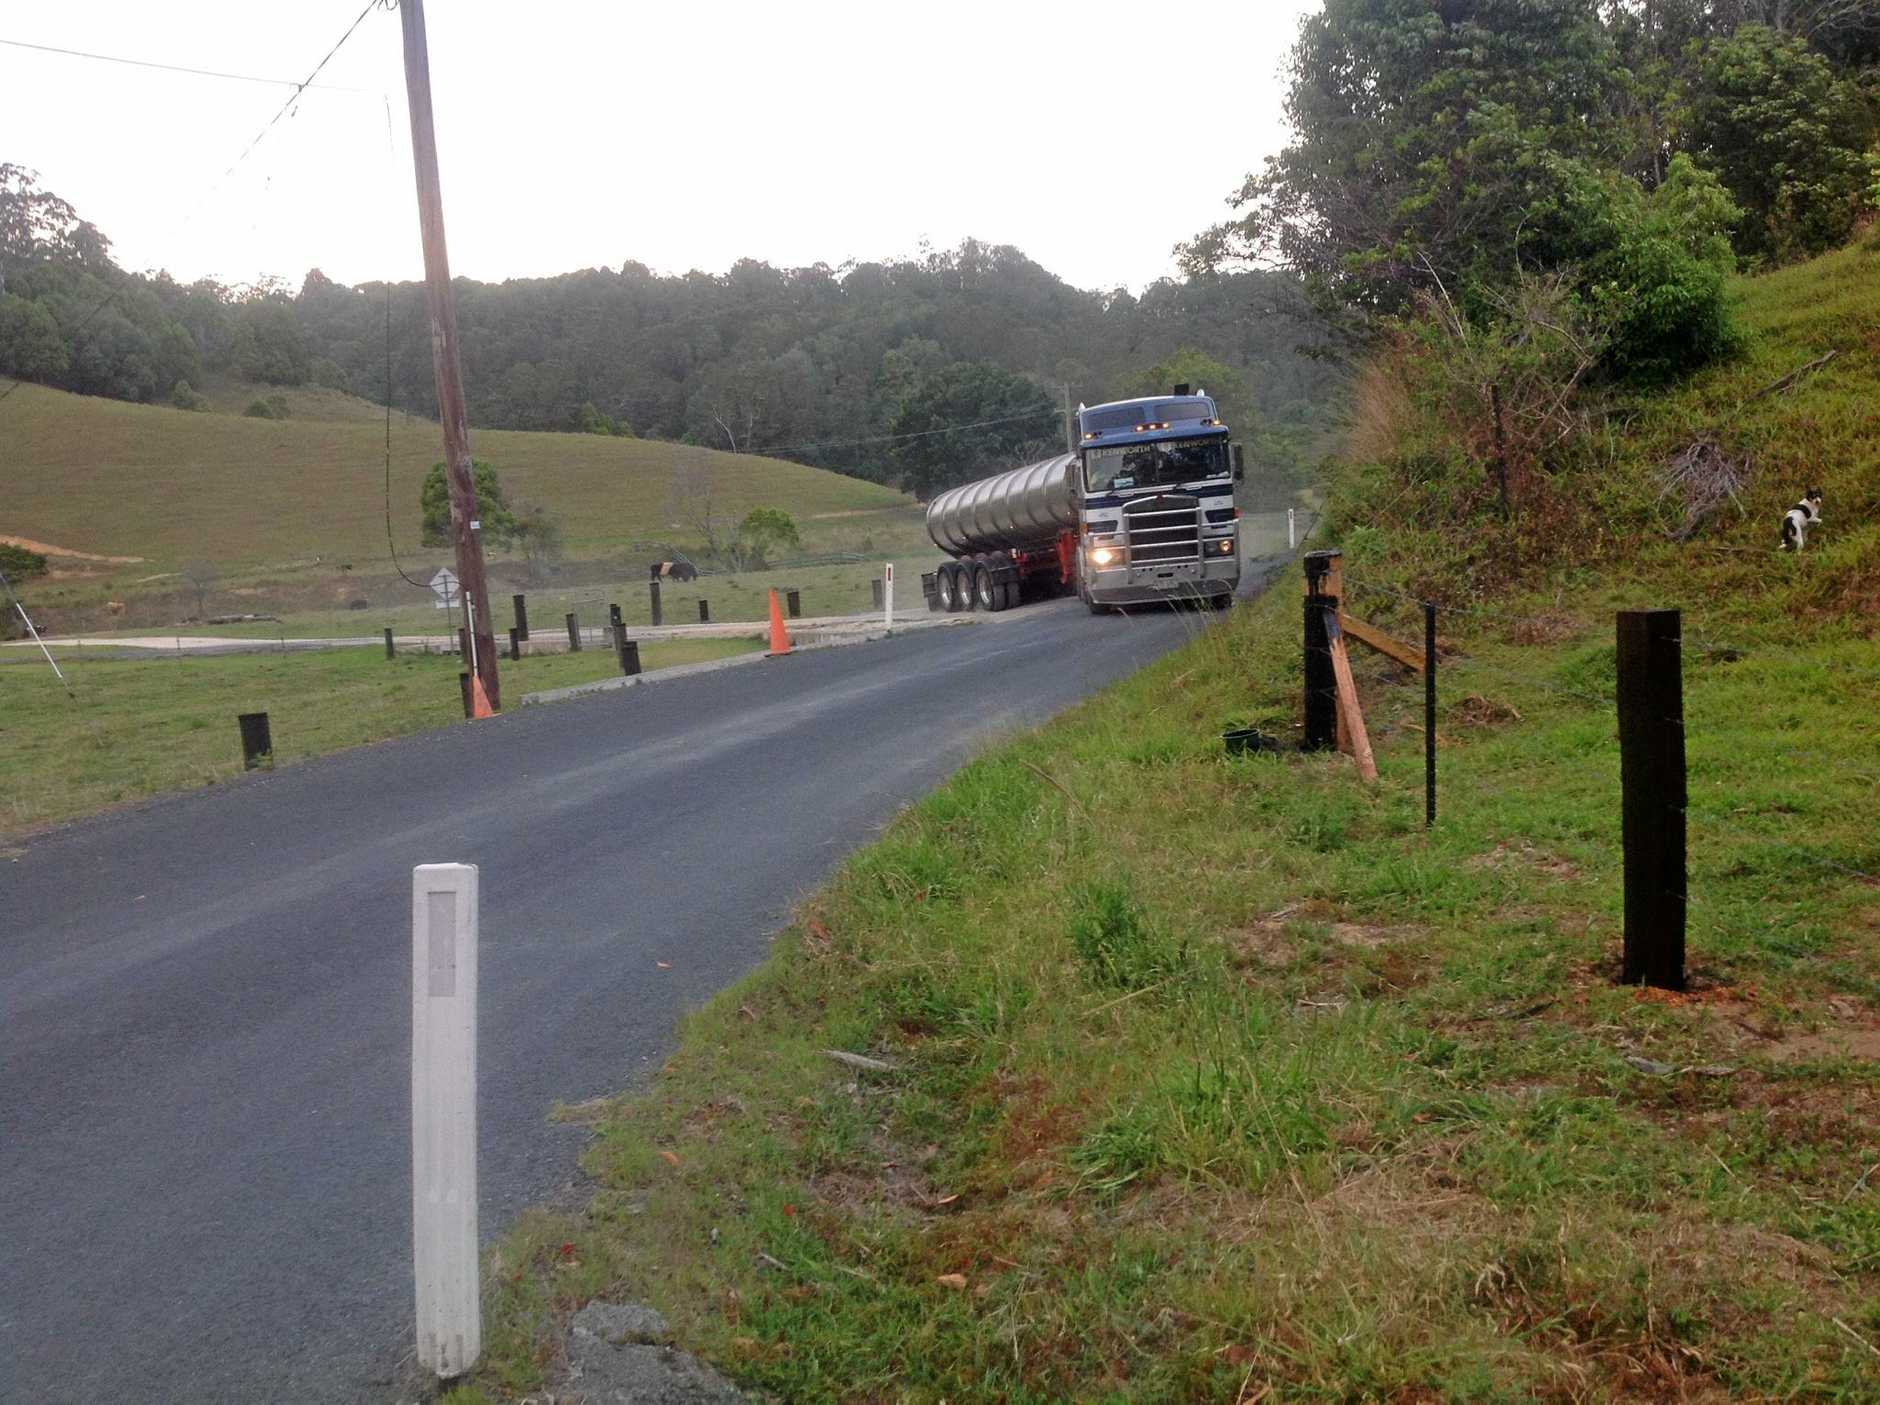 The 6m truck which is currently in use for the water extraction on Urliup Rd.